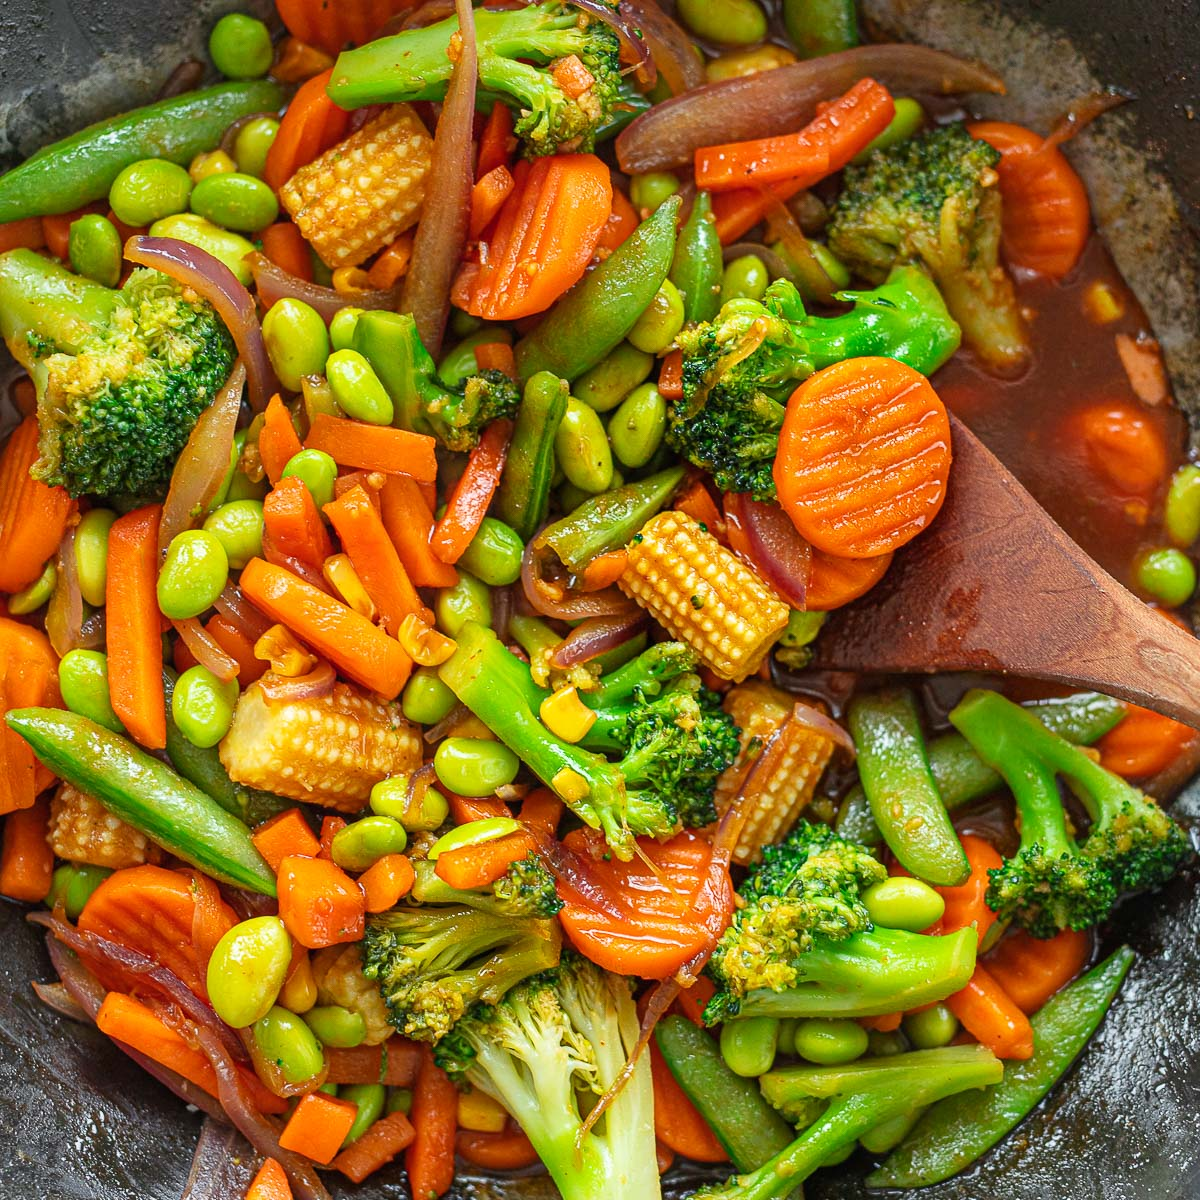 A mixture of stir-fried frozen vegetables in a wok, showing sliced carrots, broccoli florets, baby corn and snap peas.